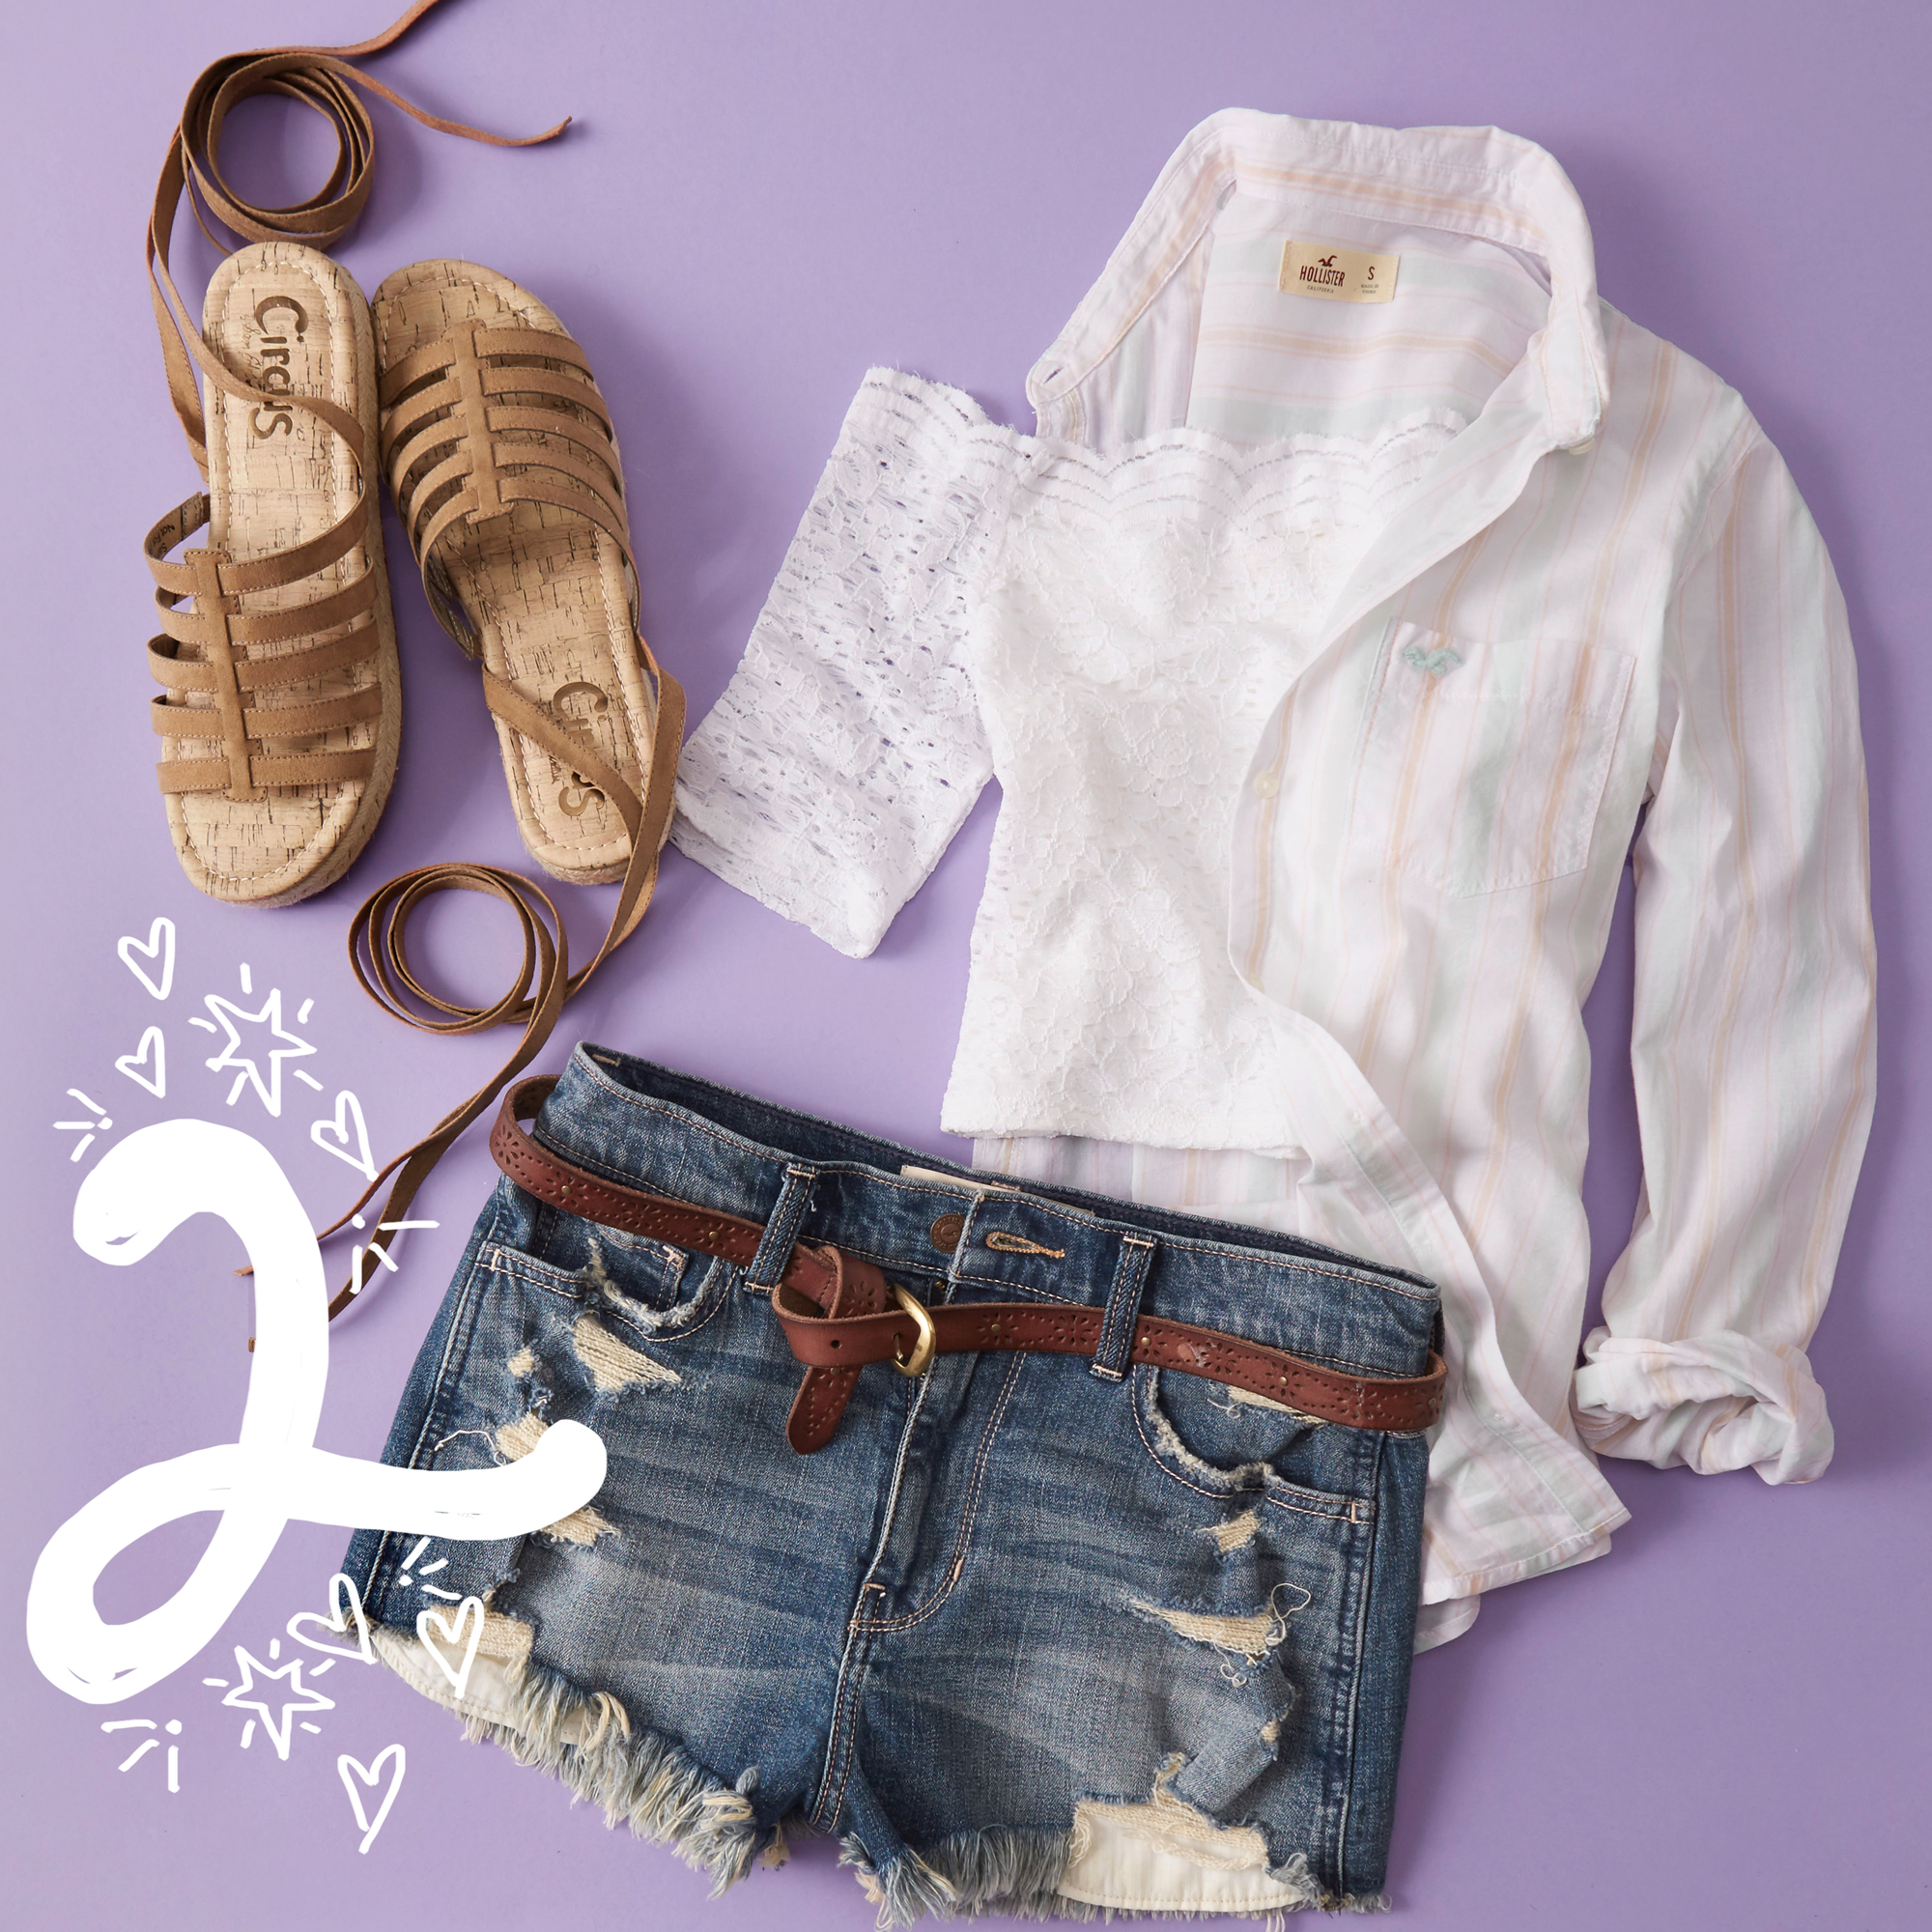 HCo-Girls-Festival-Outfits_look_02.jpg